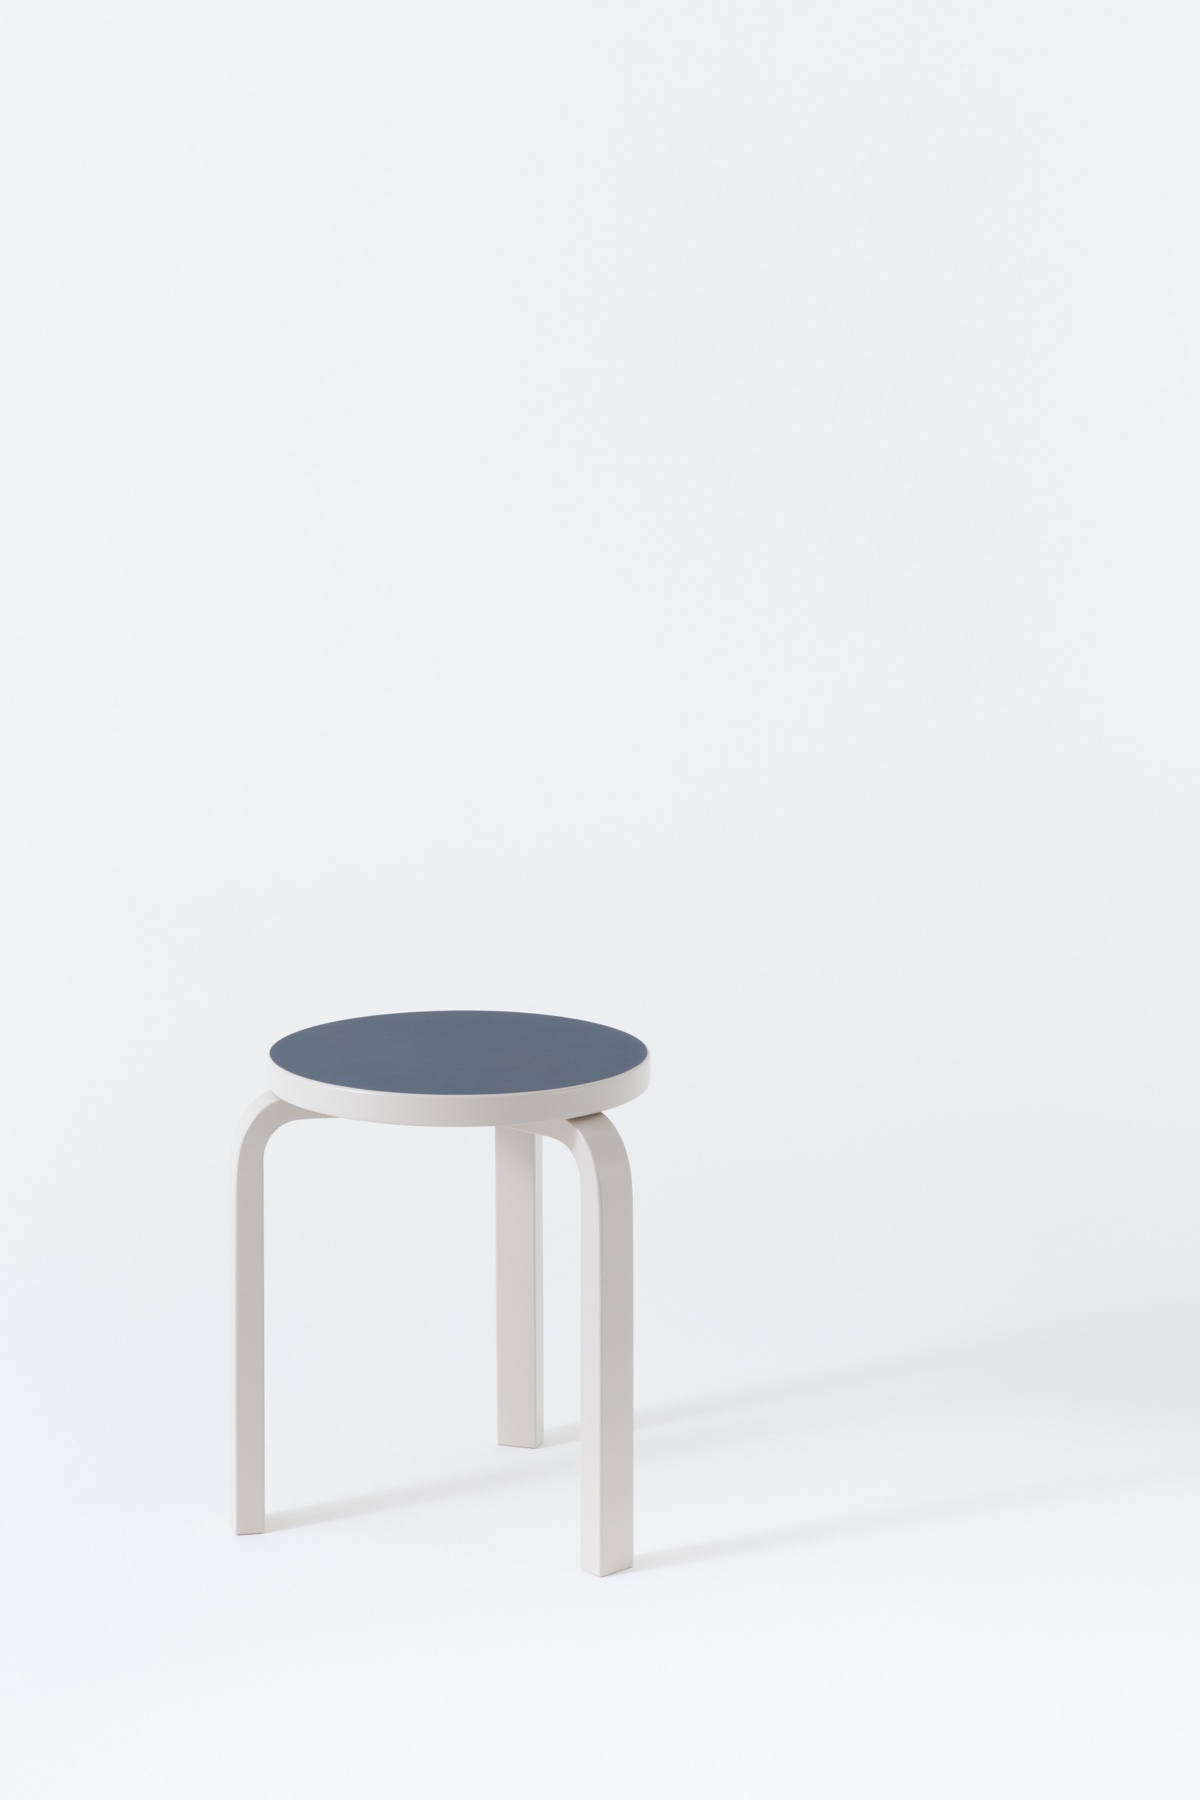 Stool 60 in stone and white lacquer. The L-leg is a solid wood leg with a laminated bend at 90°. Patented in 1933, it would become a standard featureof Alvar Aalto's furniture designs.Photo bySchaepman & Habets.